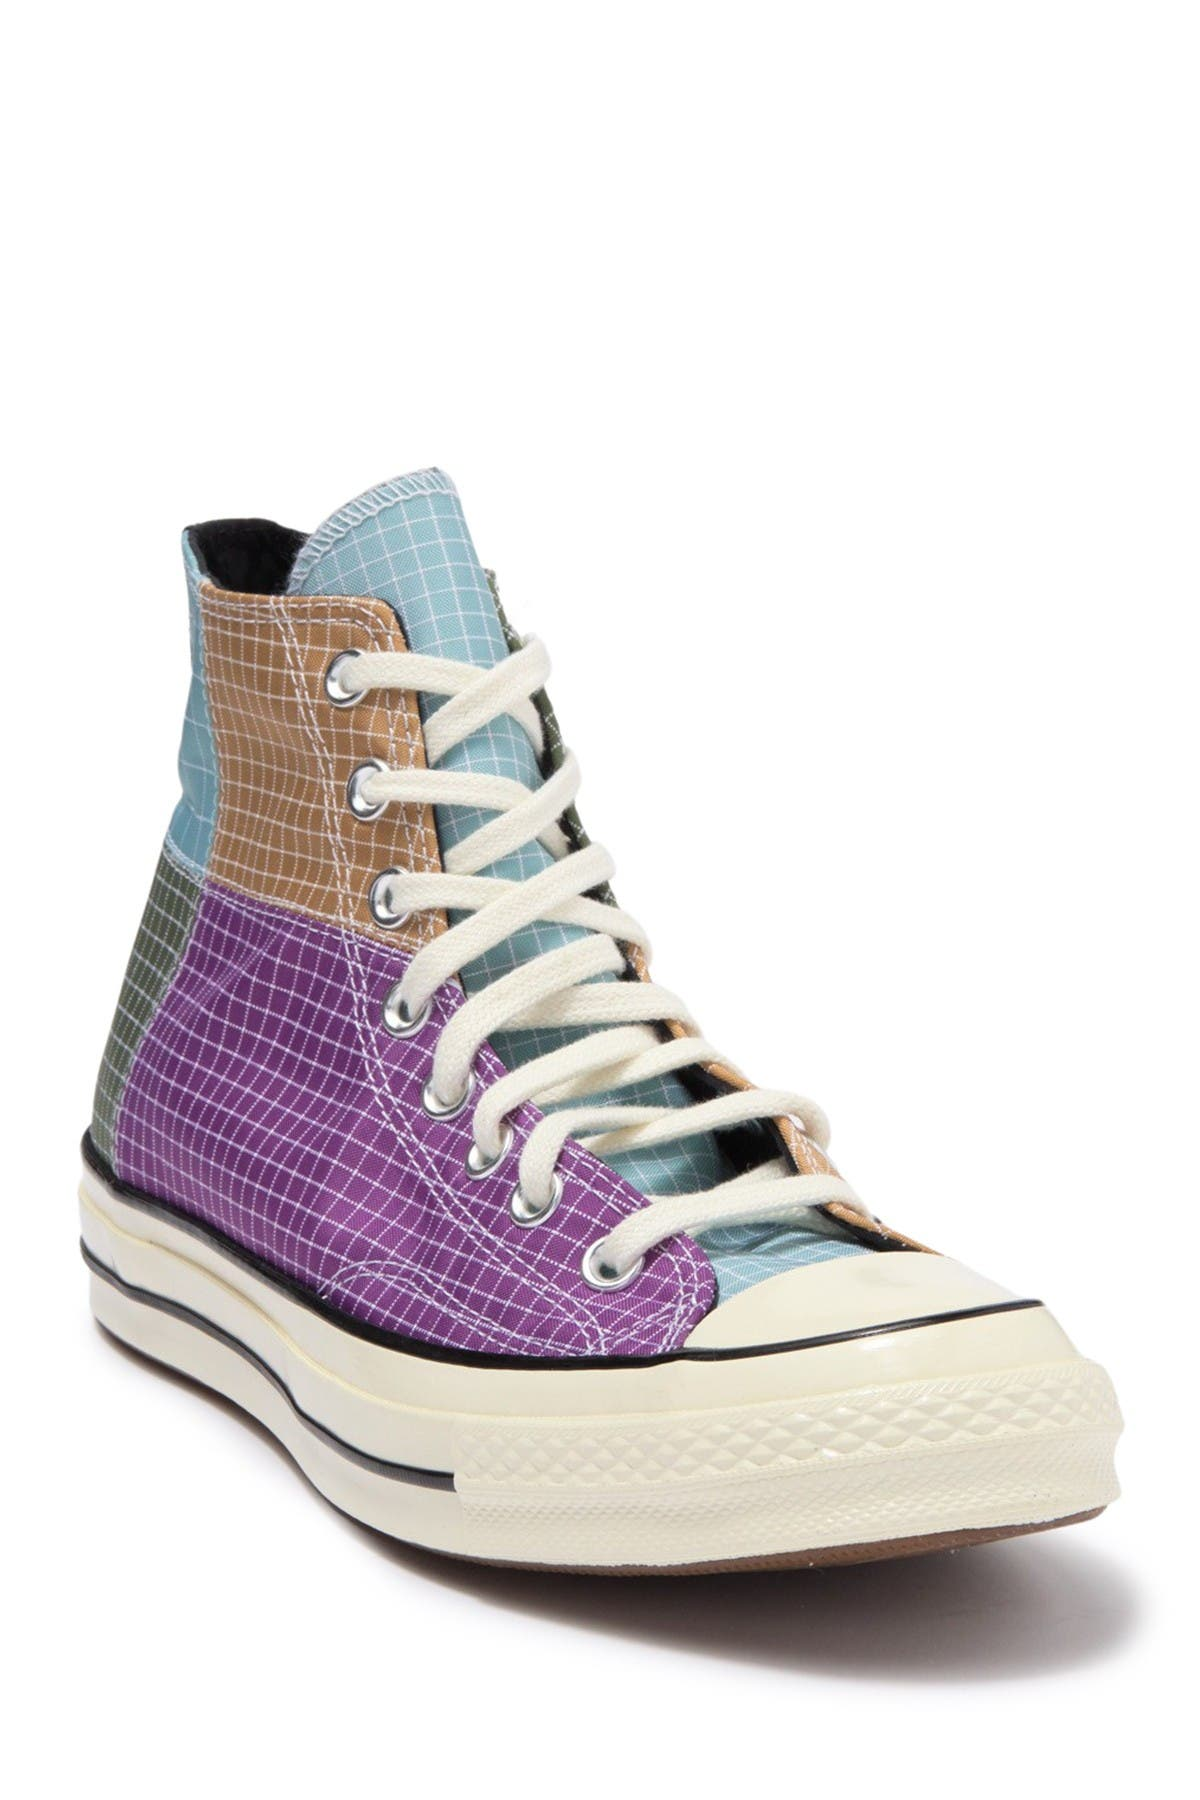 Image of Converse Chuck 70 Quad Ripstop High Top Sneaker